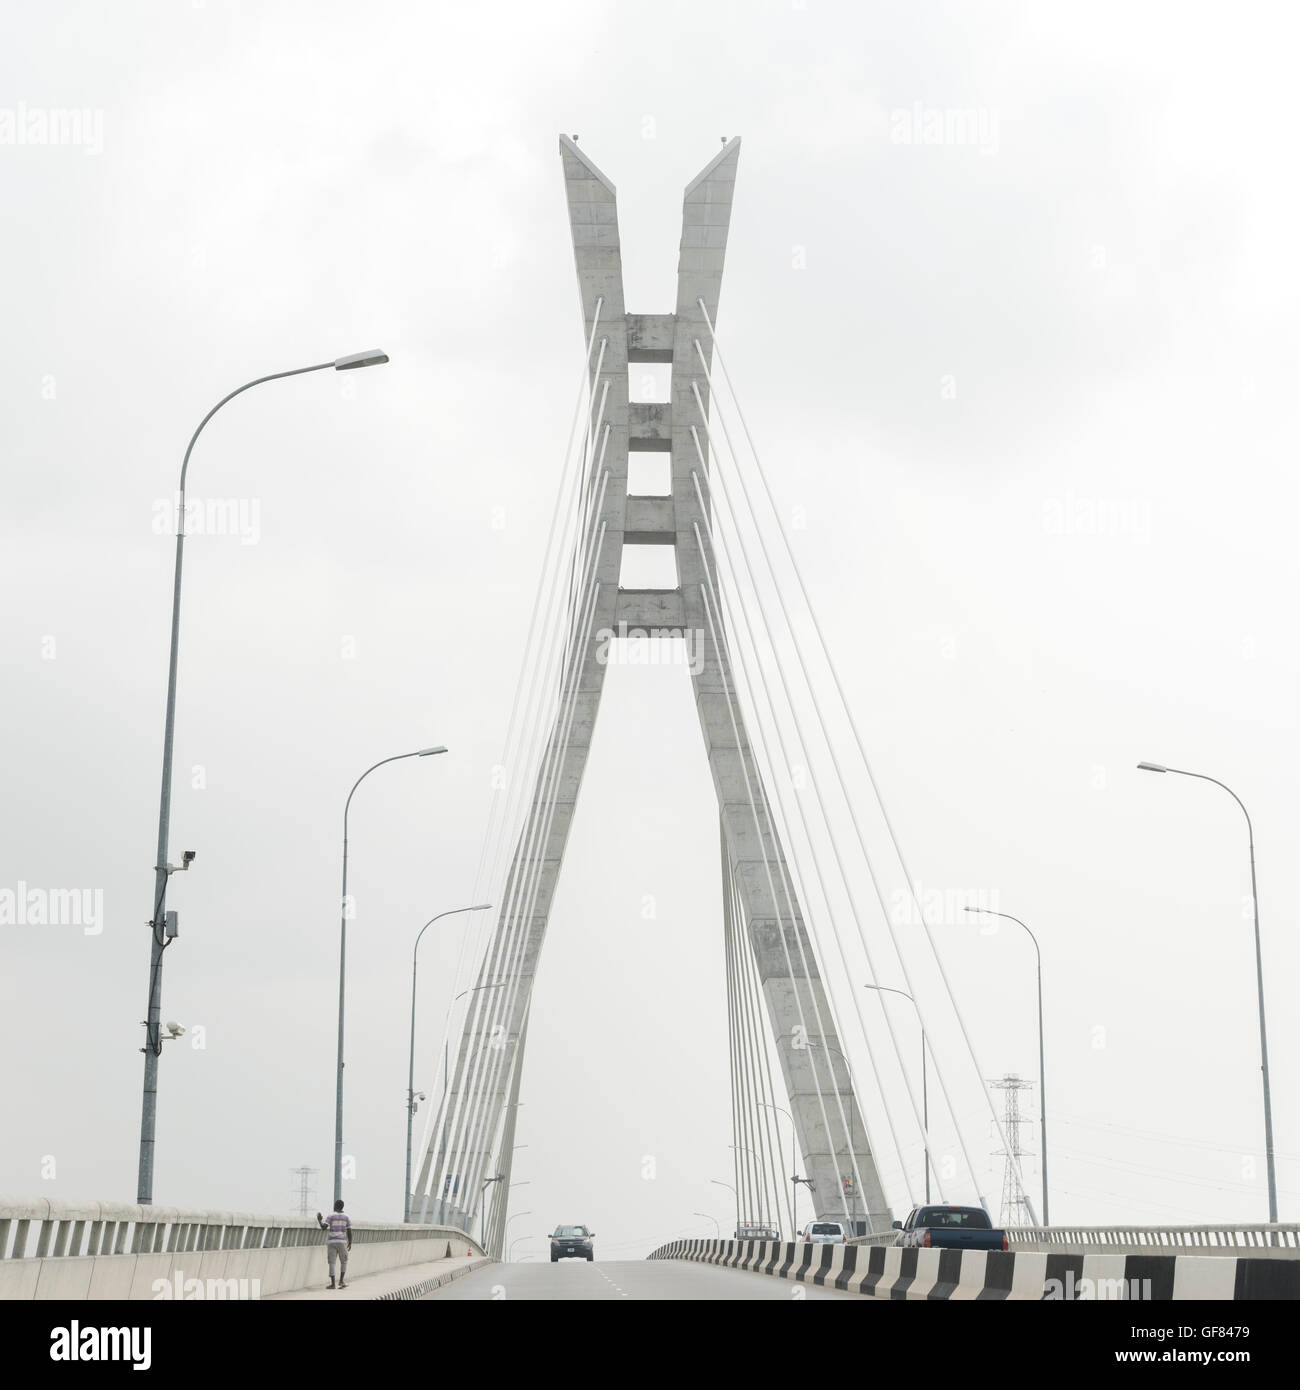 Lekki-Ikoyi Bridge, Lagos Nigeria, West Africa - Stock Image